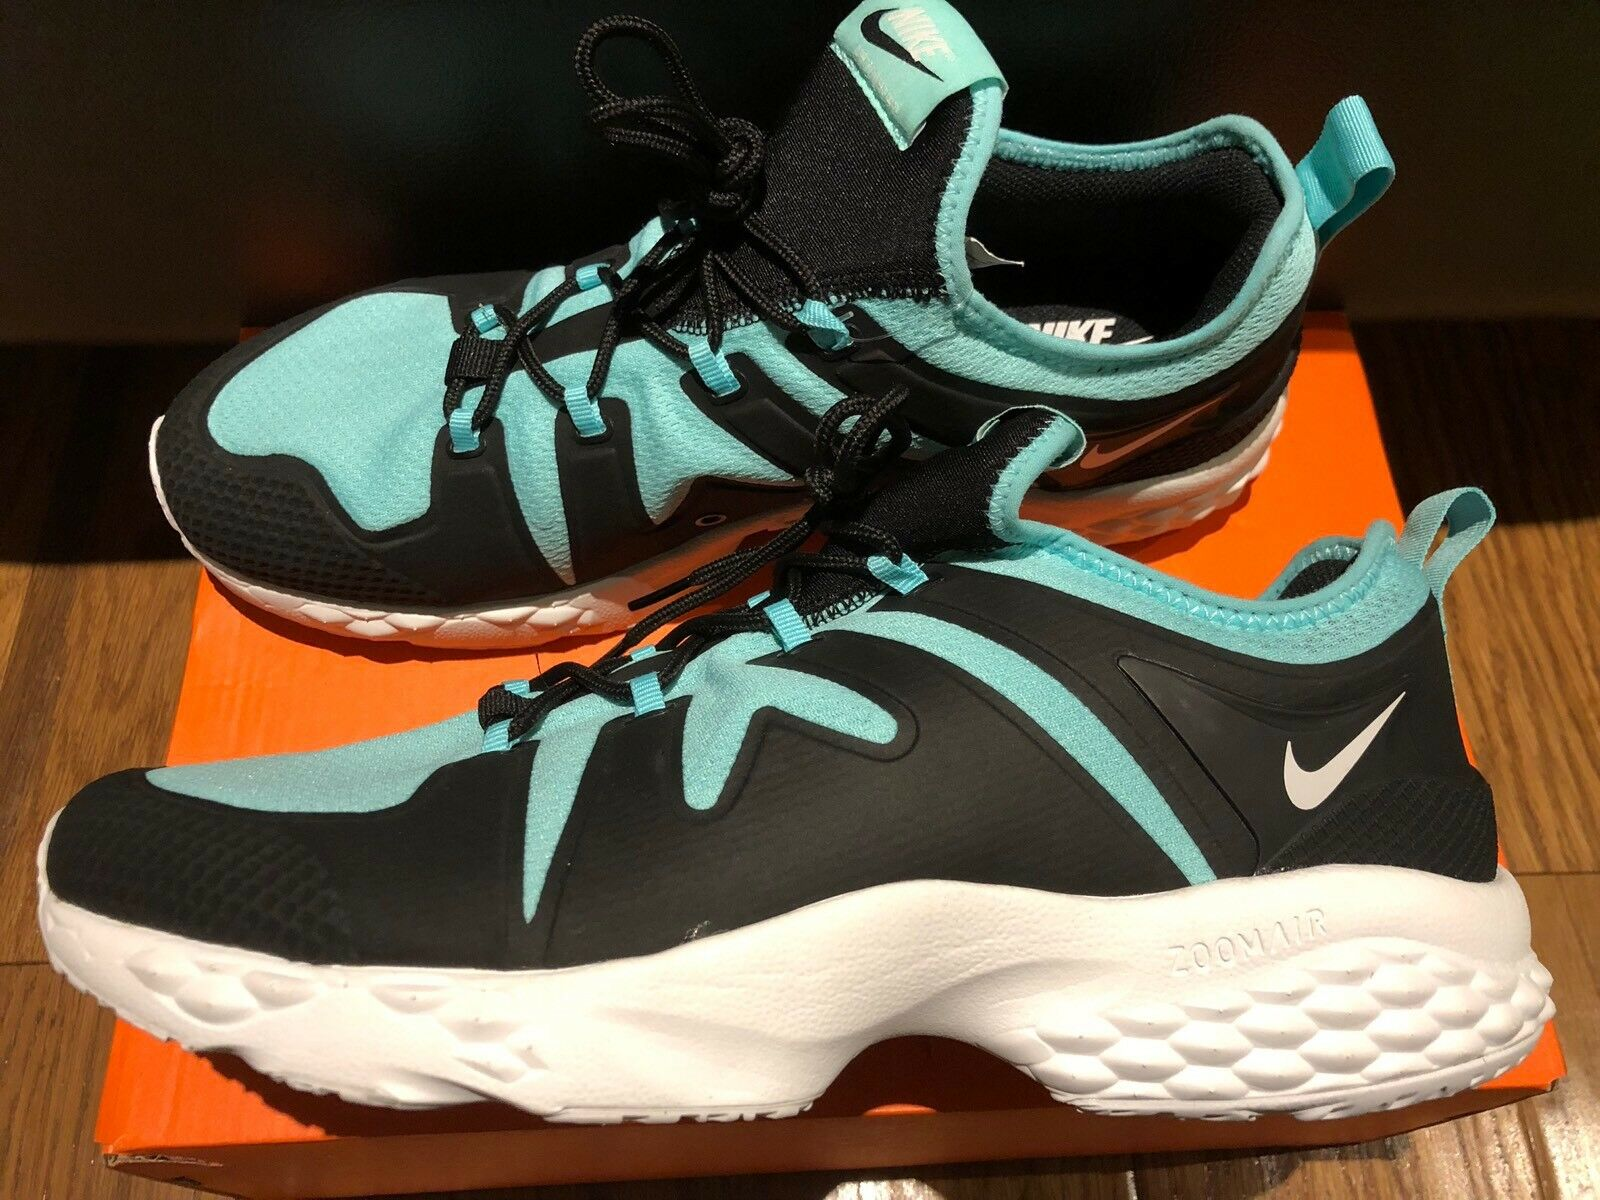 Nike Homme Taille 9 Air Zoom LWP'16 SP Chaussures paniers Turquoise Tiffa NY 918226-006